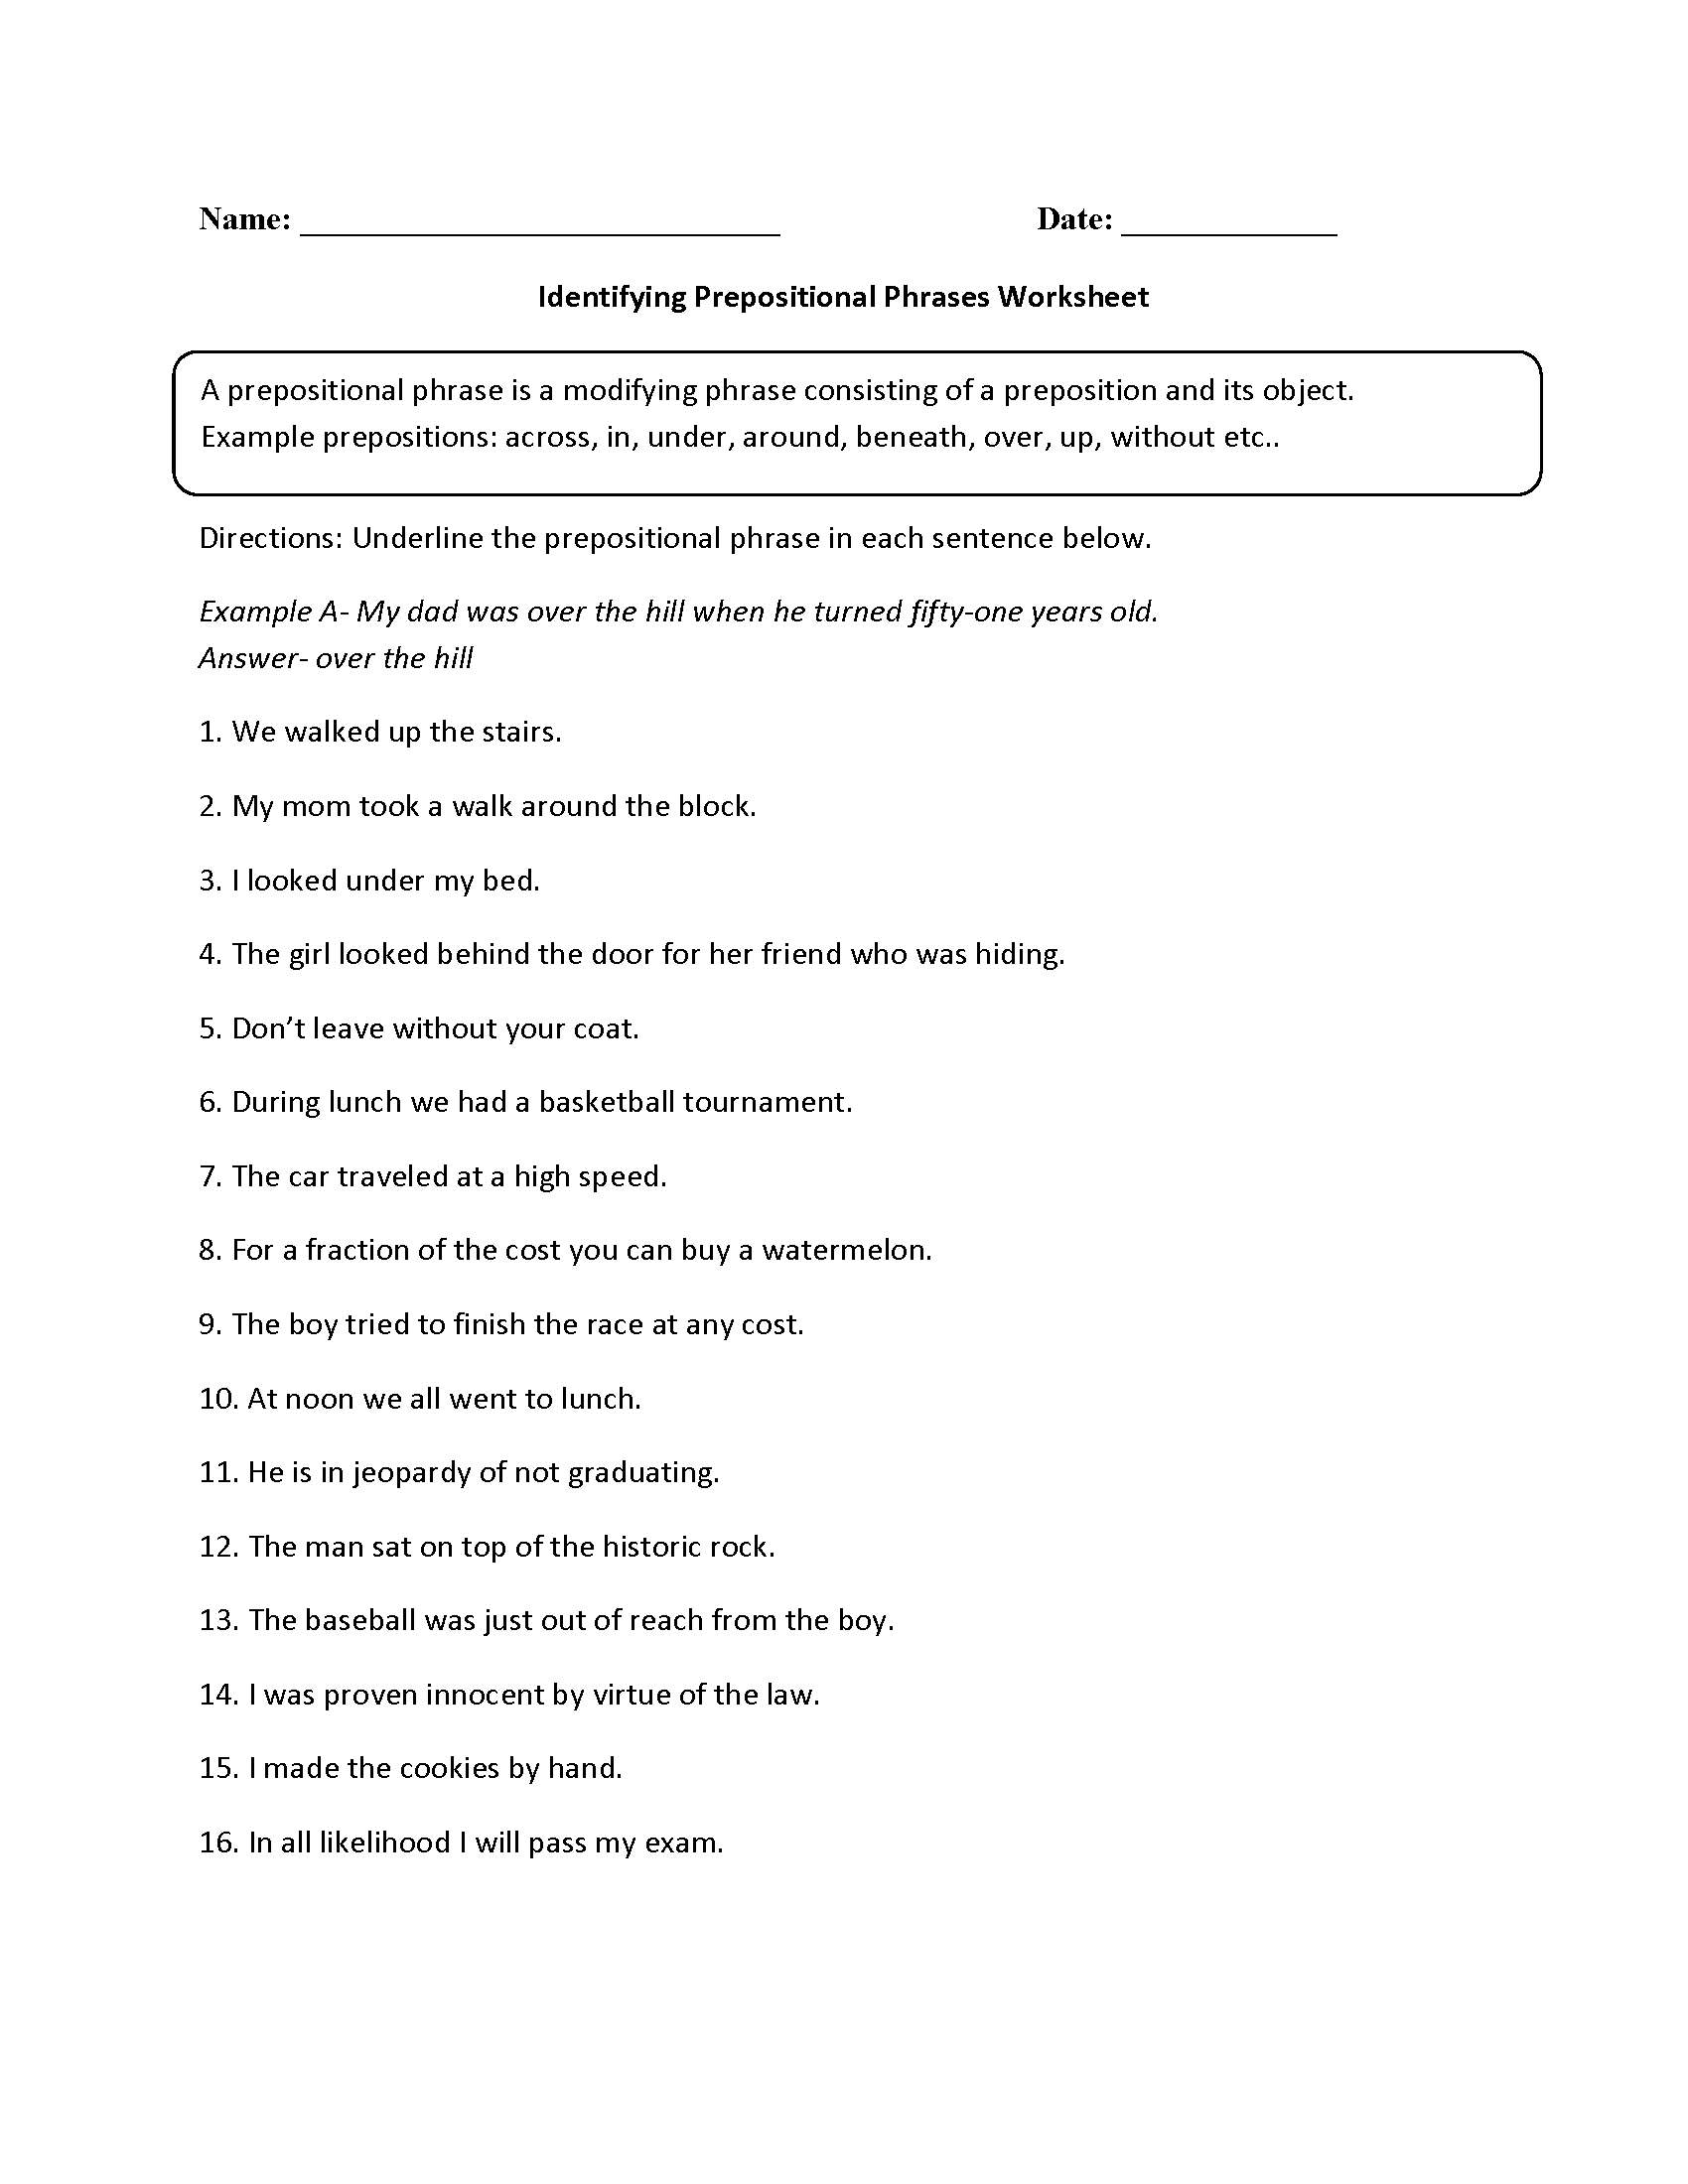 worksheet Prepositional Phrases Worksheets prepositional phrases worksheets identifying worksheet